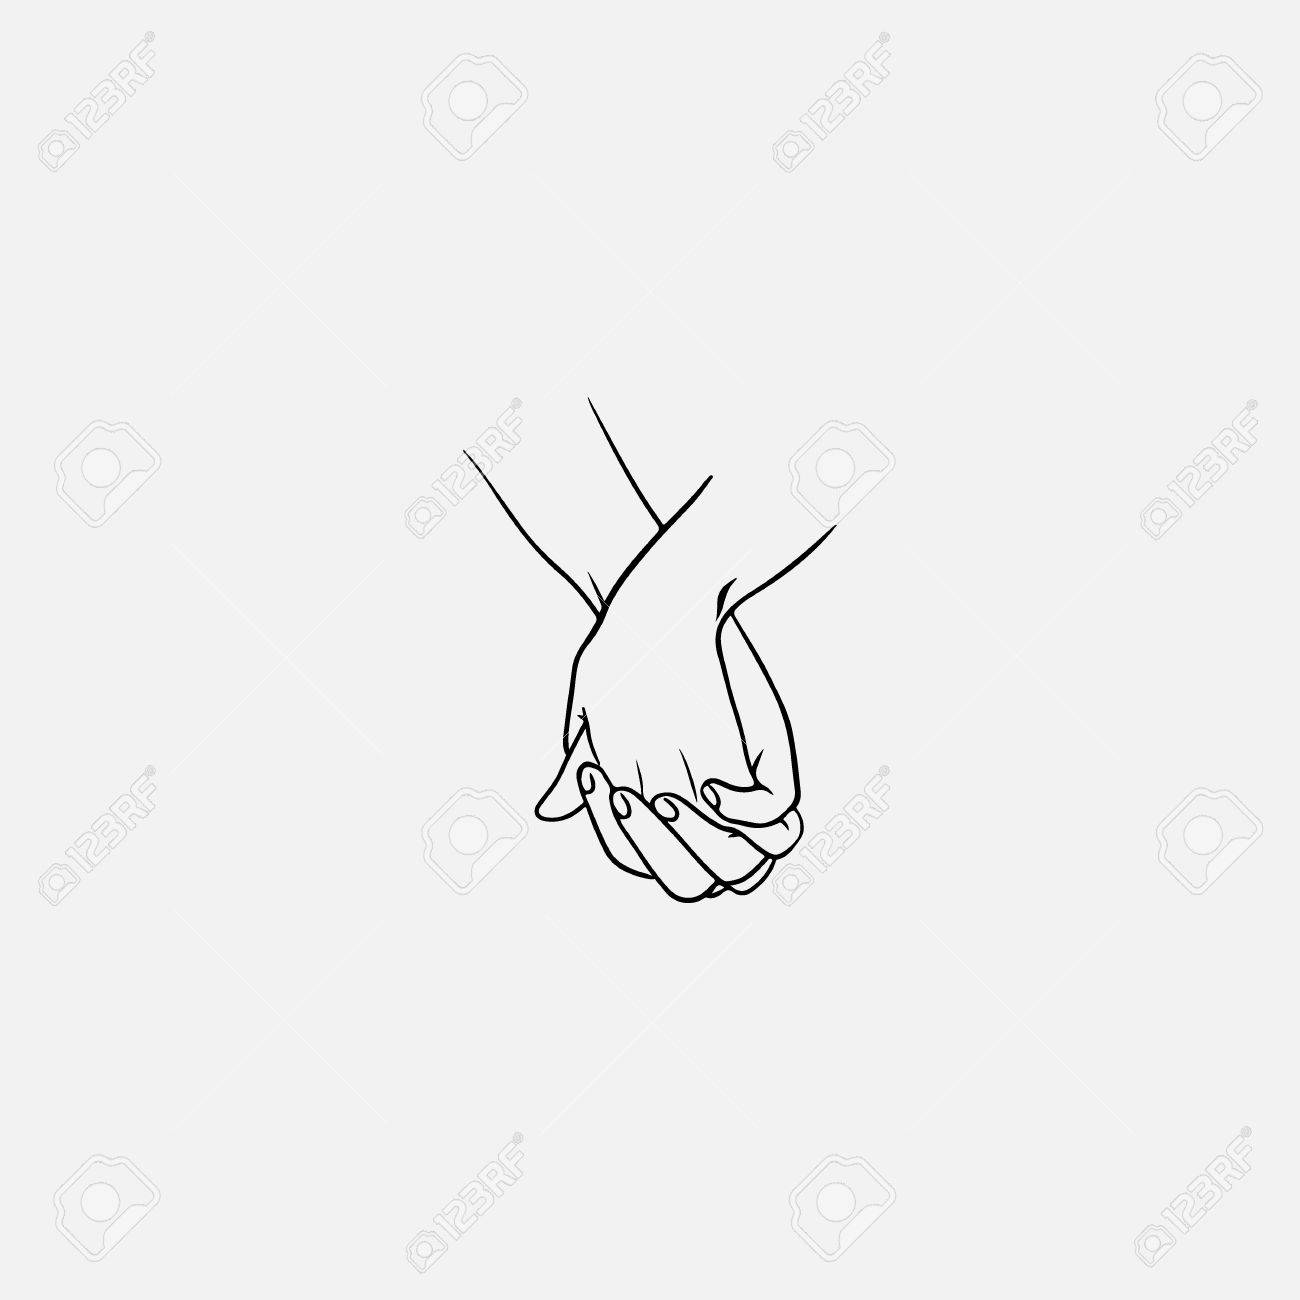 Holding hands with interlocked or intertwined fingers drawn by black lines isolated on white background